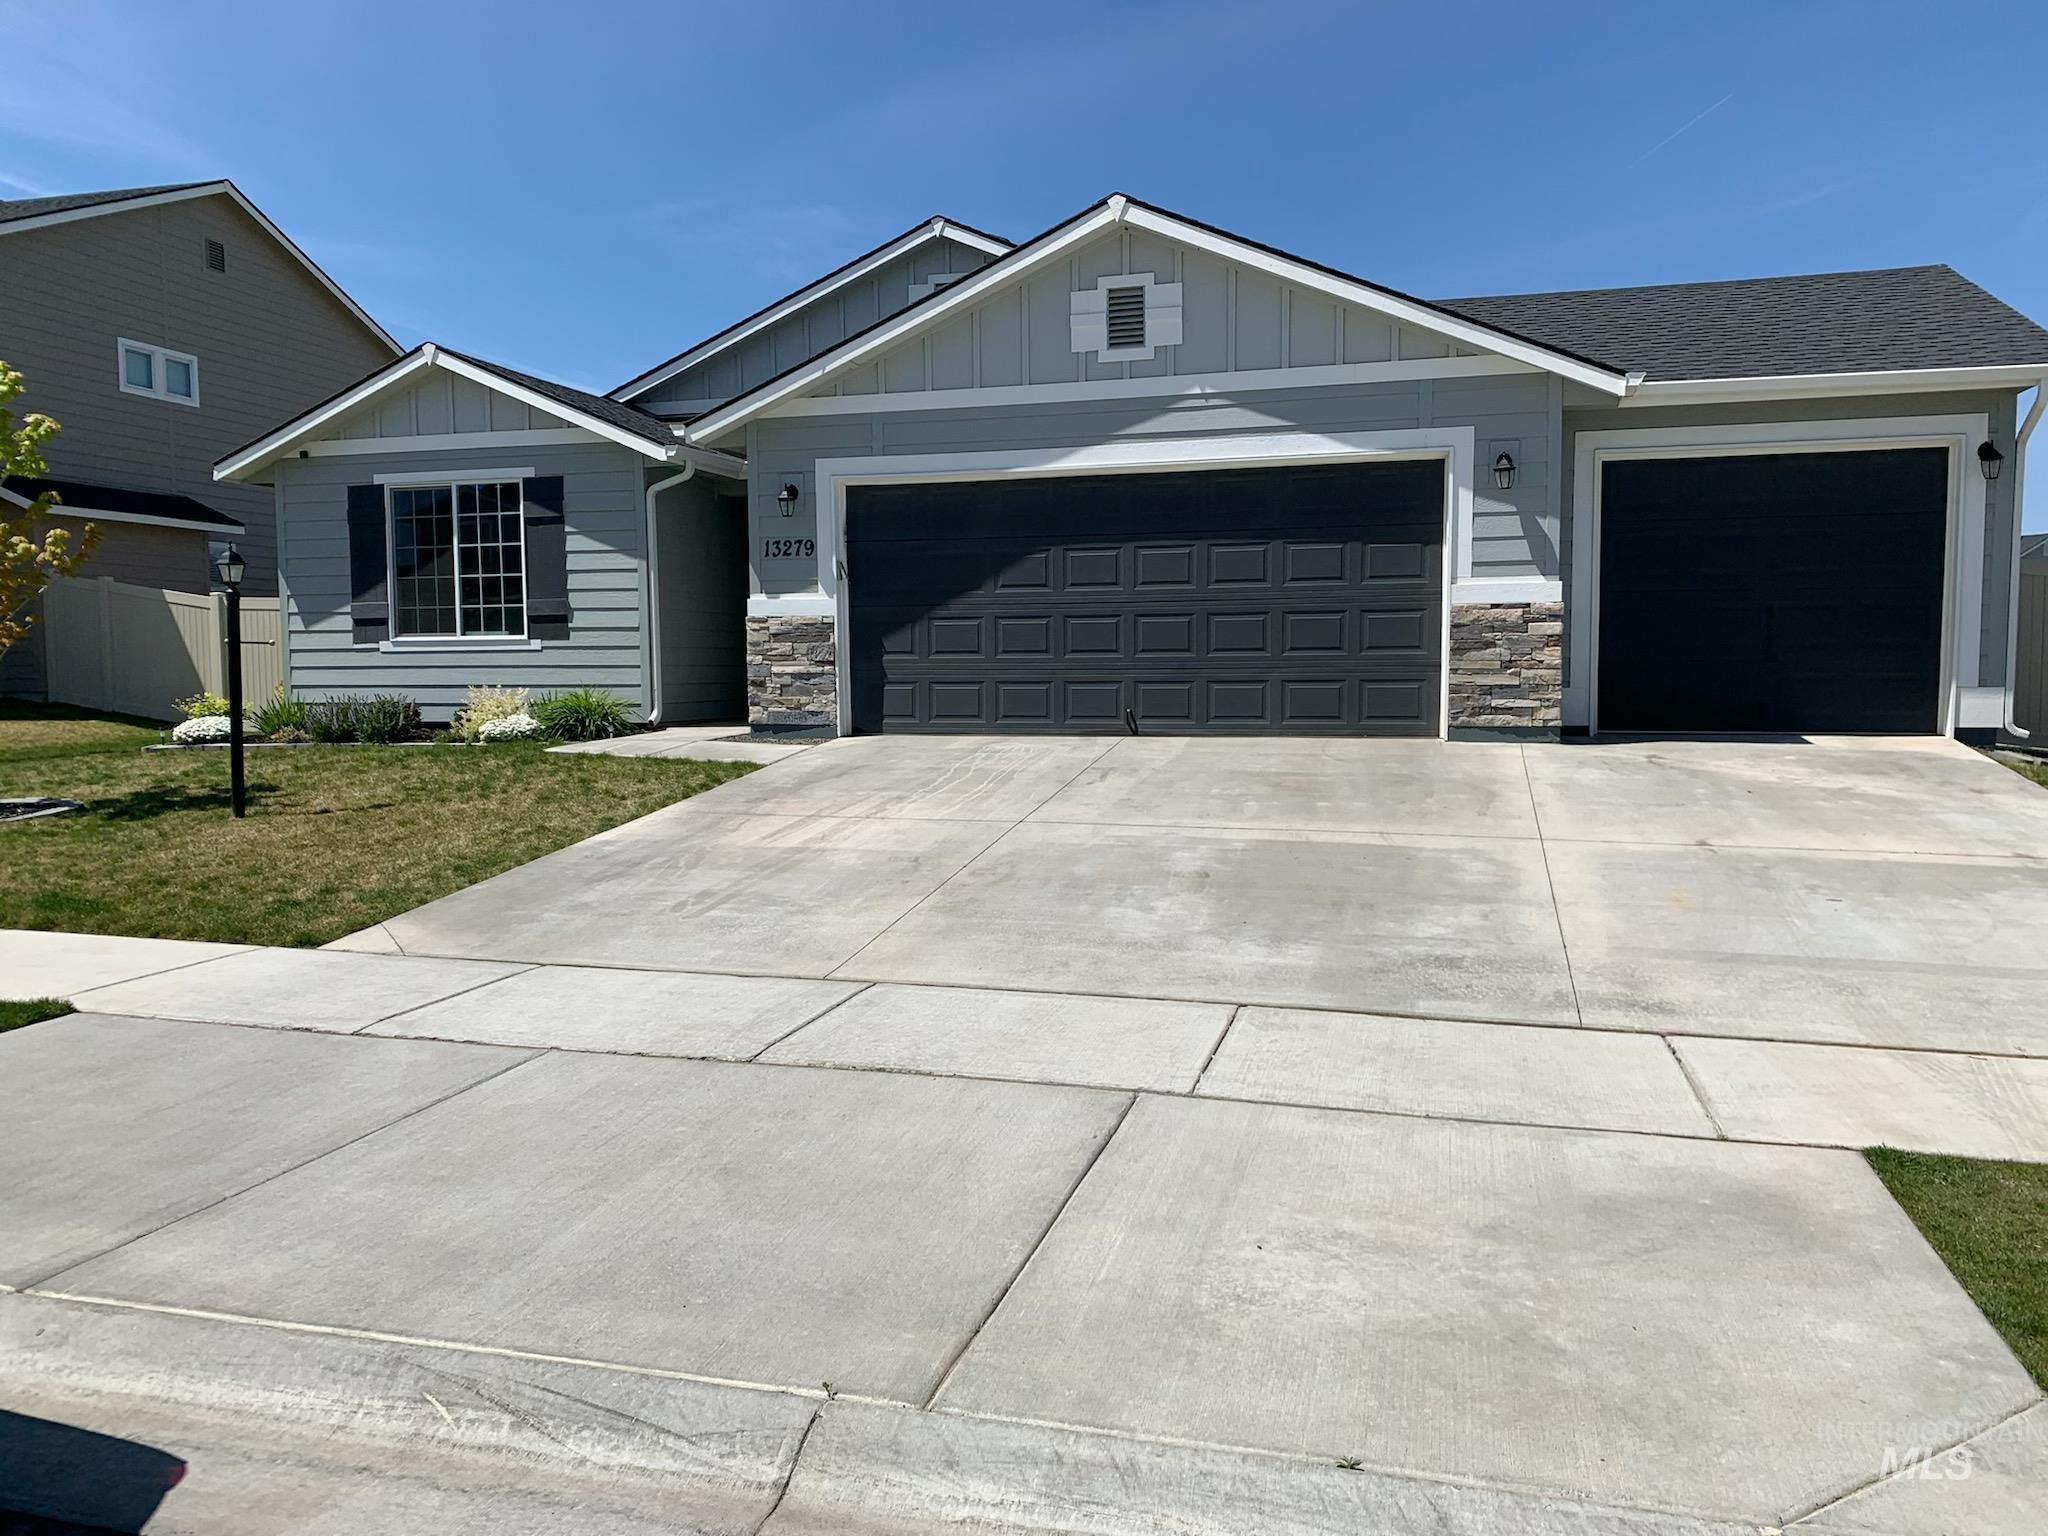 13279 S Pine River Property Photo - Nampa, ID real estate listing